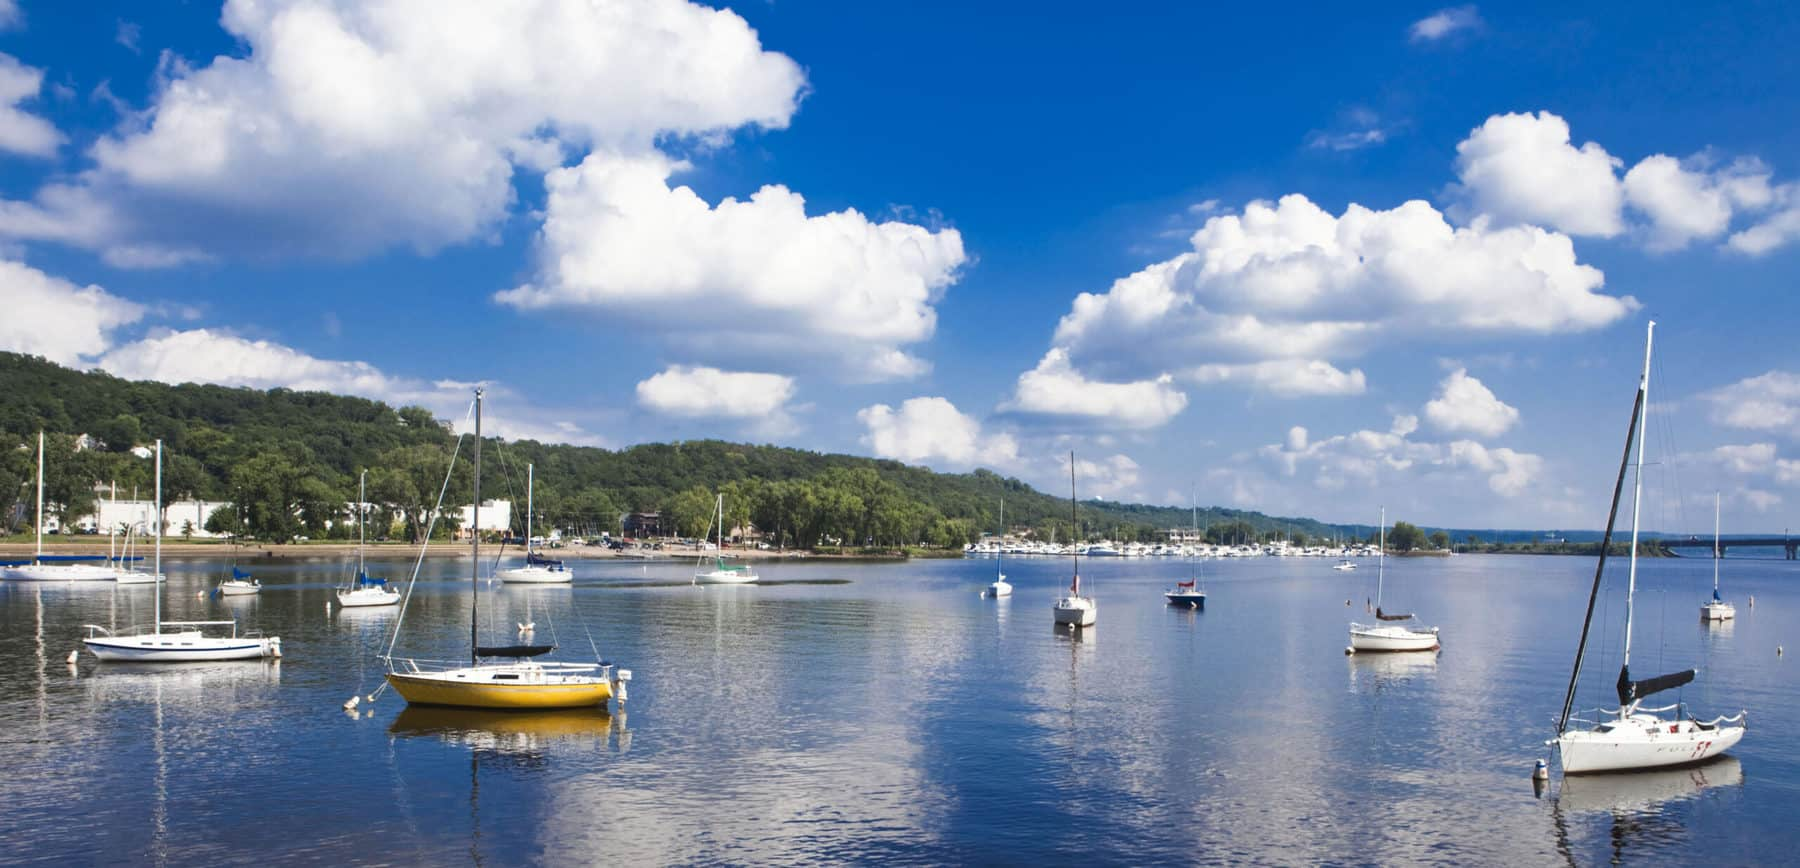 Sailboats anchored on the St. Croix River near Hudson, Wisconsin, on a sunny day with blue skies.